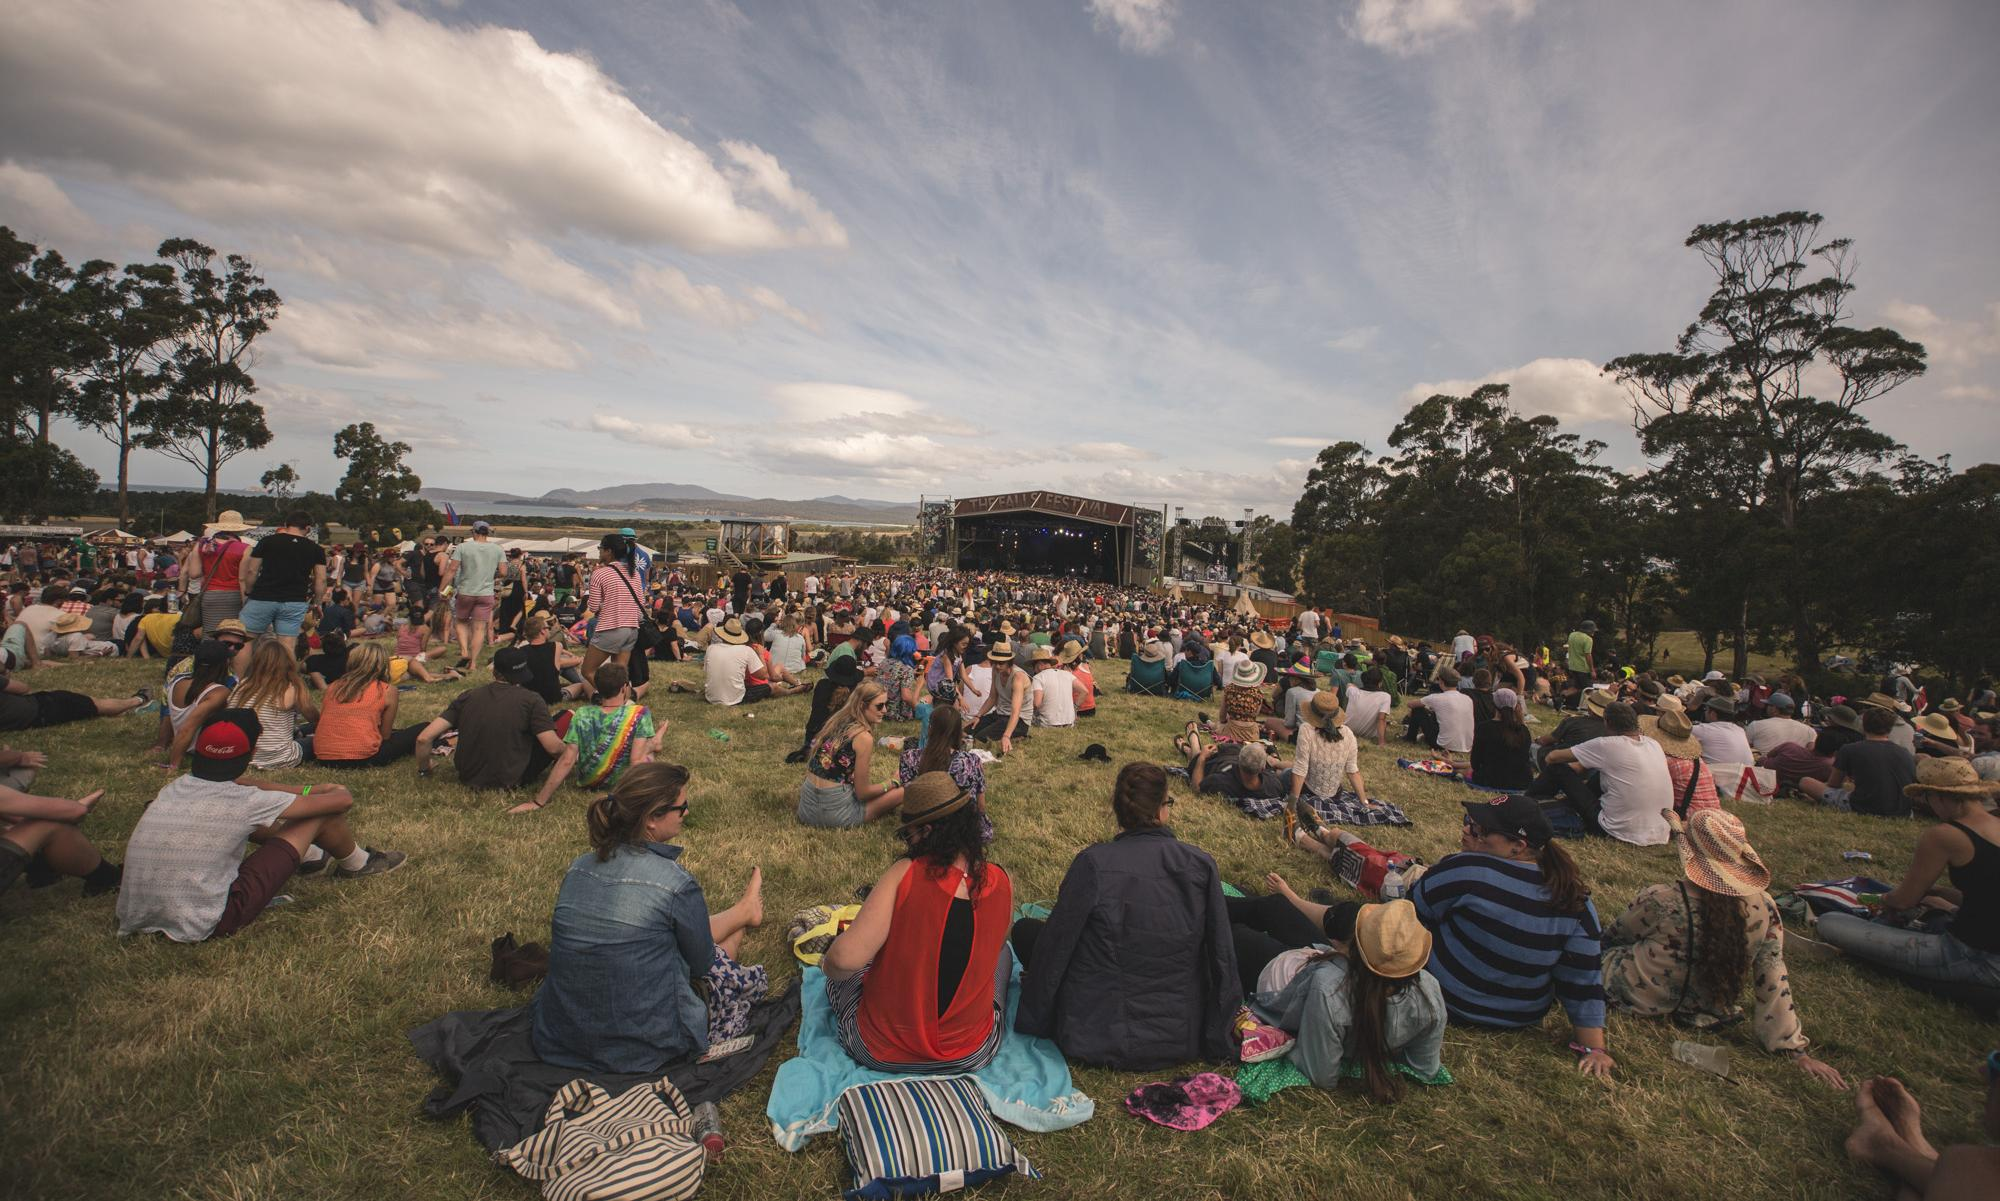 Falls festival: woman allegedly assaulted in mosh pit performed citizen's arrest